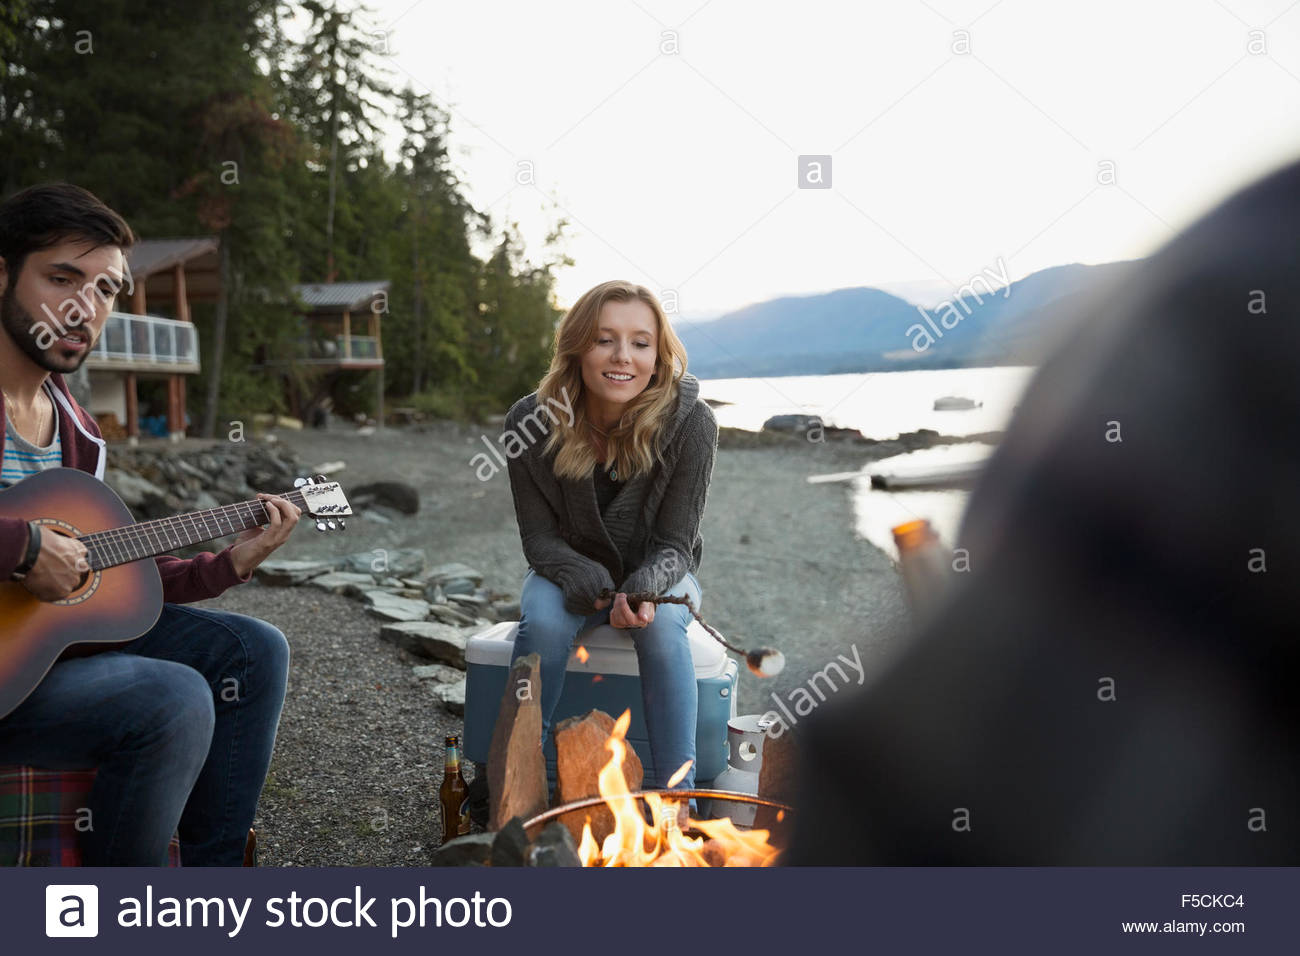 Young friends roasting marshmallows playing guitar lakeside campfire - Stock Image